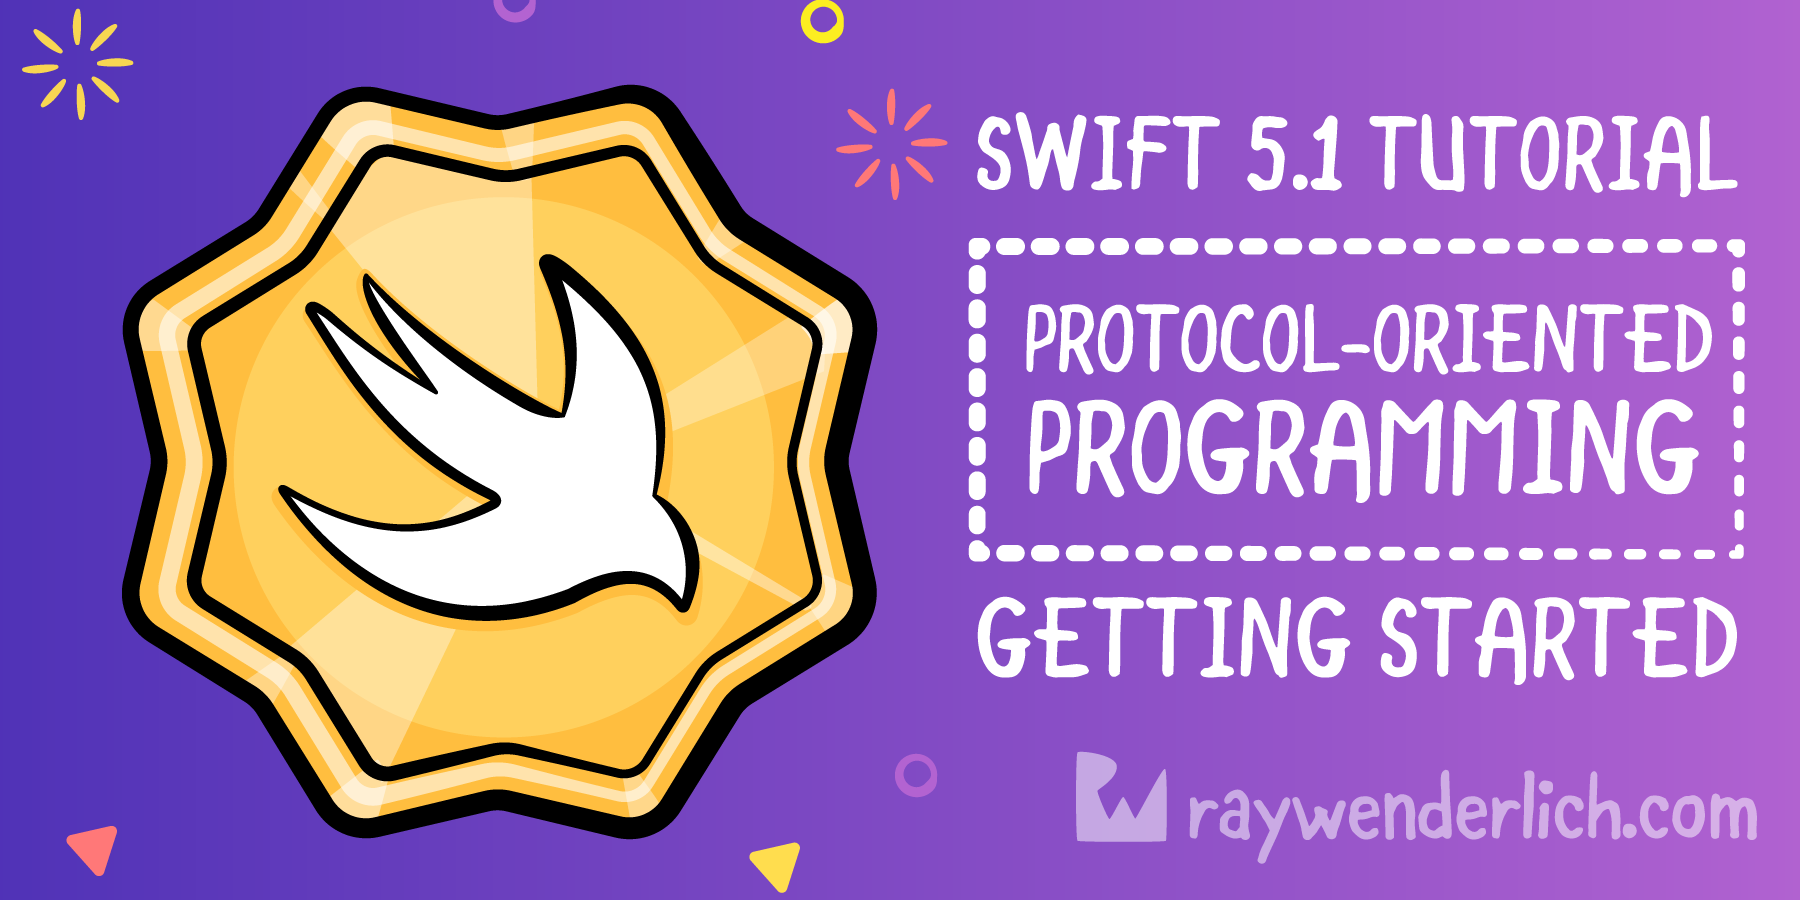 Protocol Oriented Programming Tutorial In Swift 5 1 Getting Started Raywenderlich Com